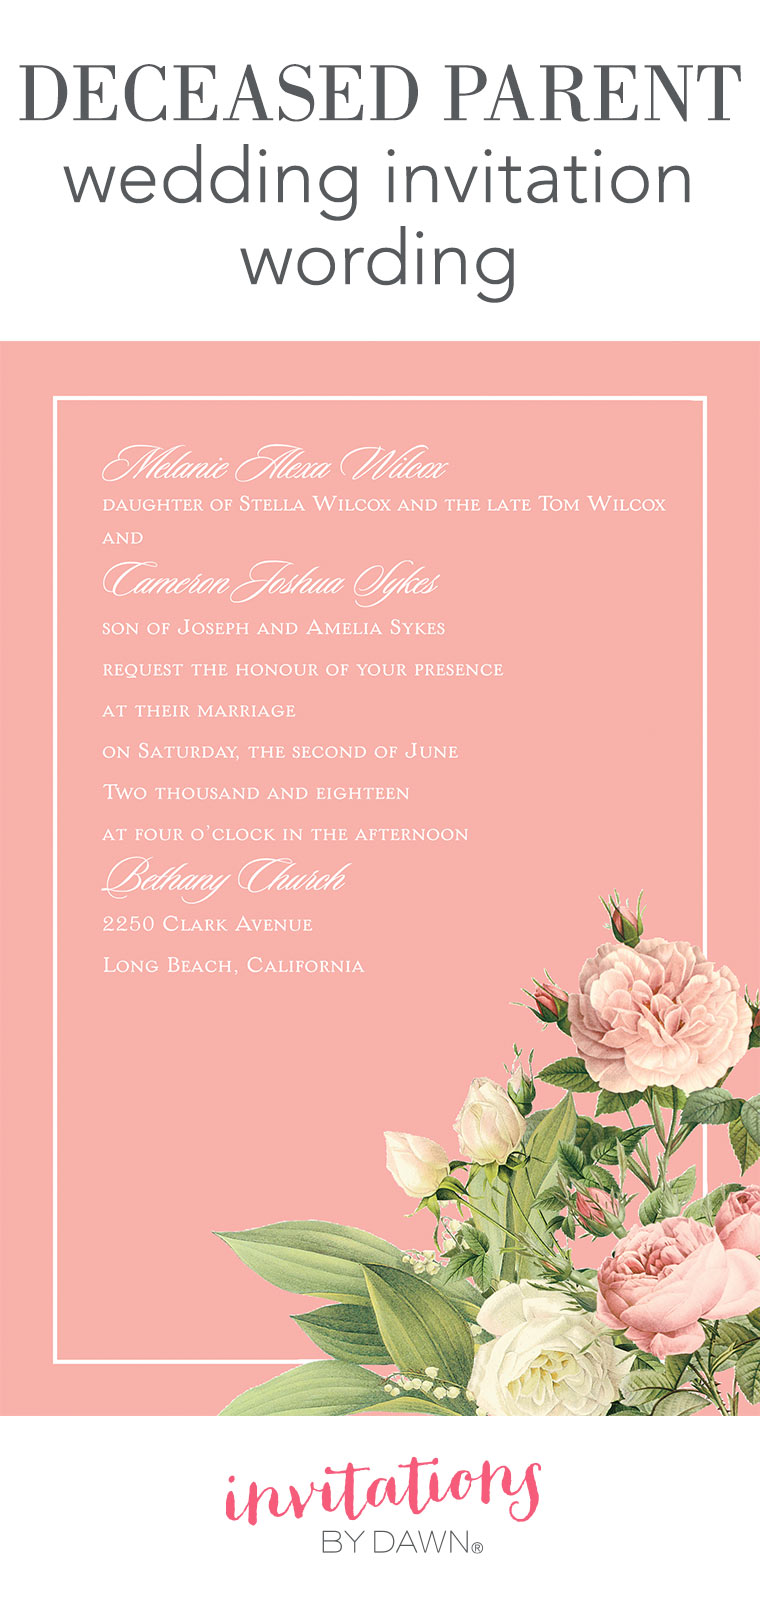 Deceased Parent Wedding Invitation Wording